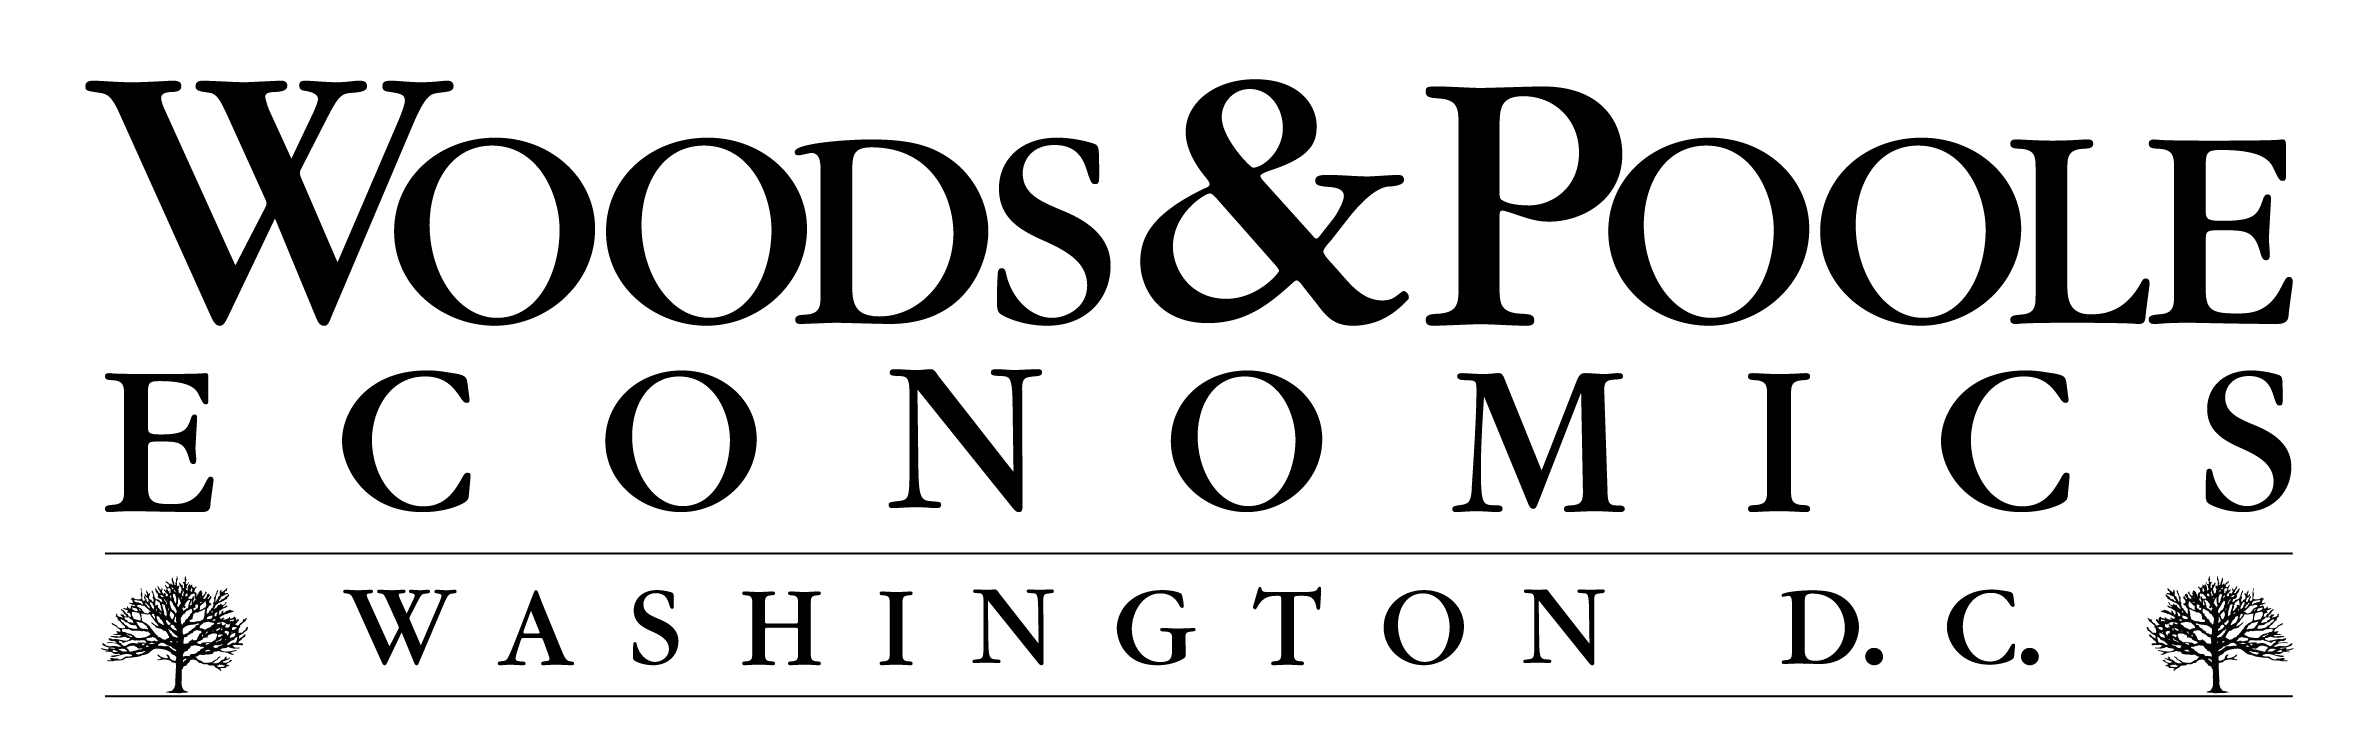 GLASGOW KY (FIPS 23980) | Woods & Poole Economics, Inc